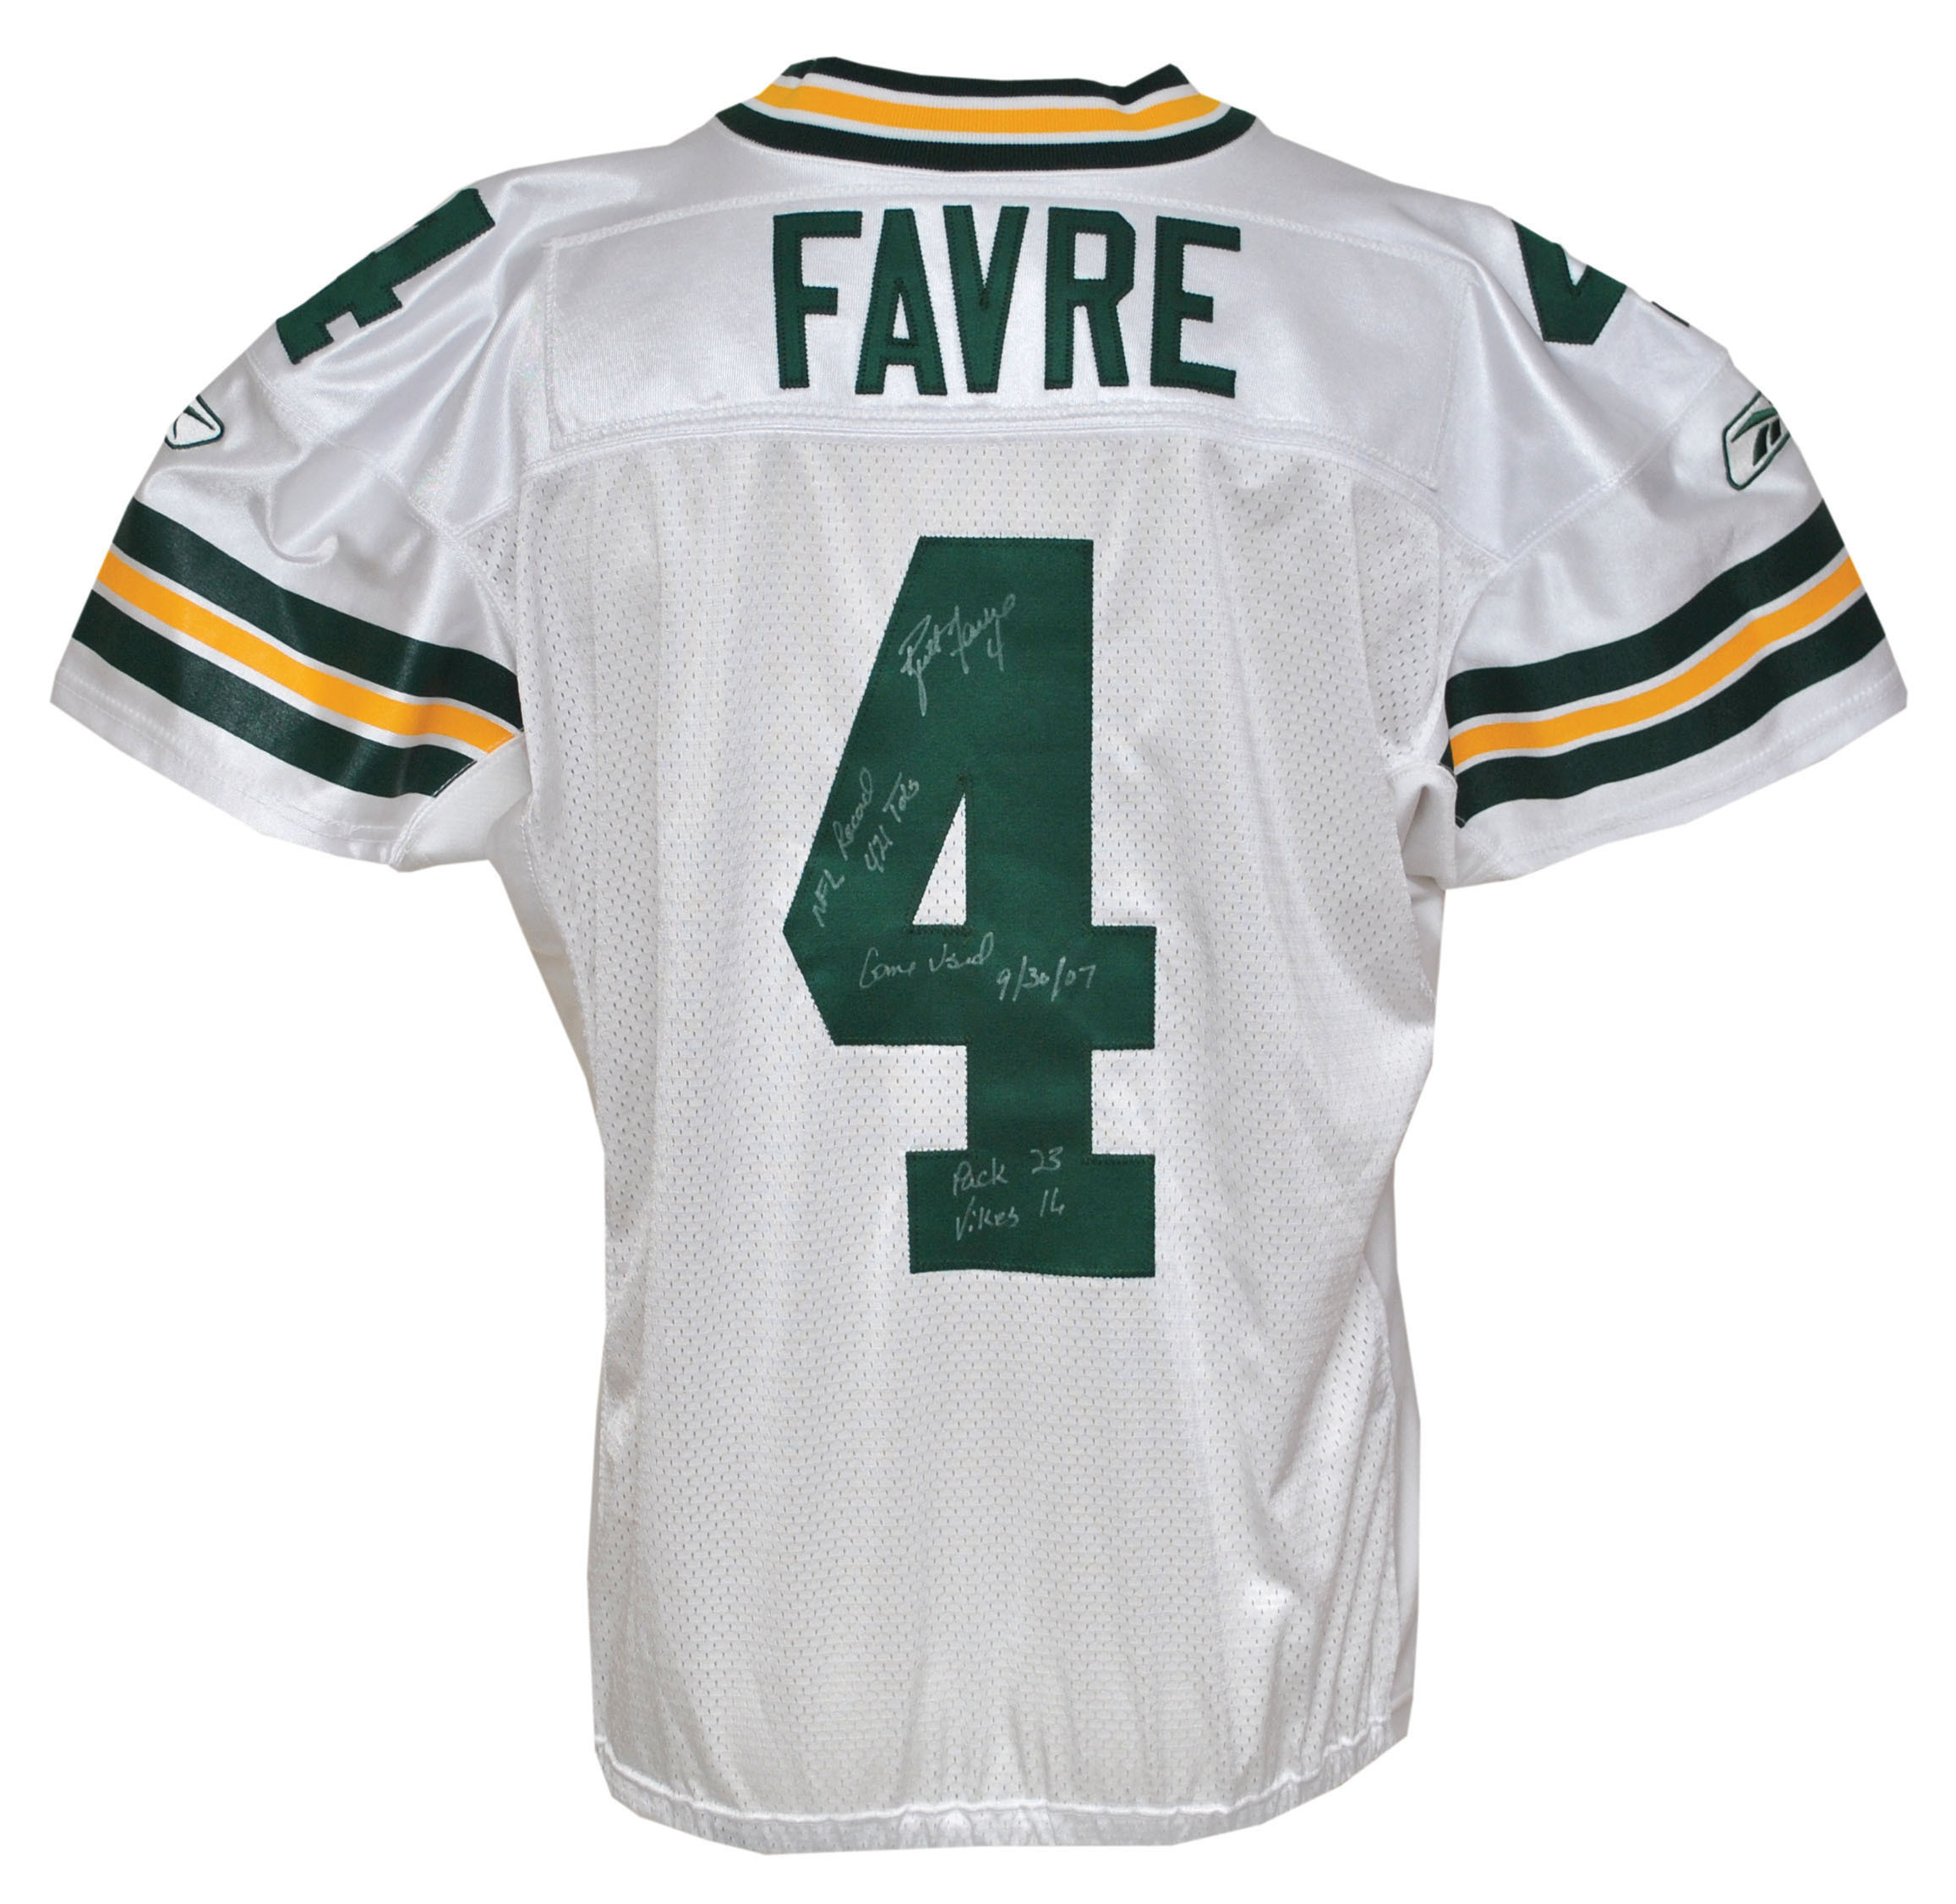 Autographed Brett Favre Uniform Worn When He Broke NFL All-Time Touchdown Record Up for Auction, 12/11